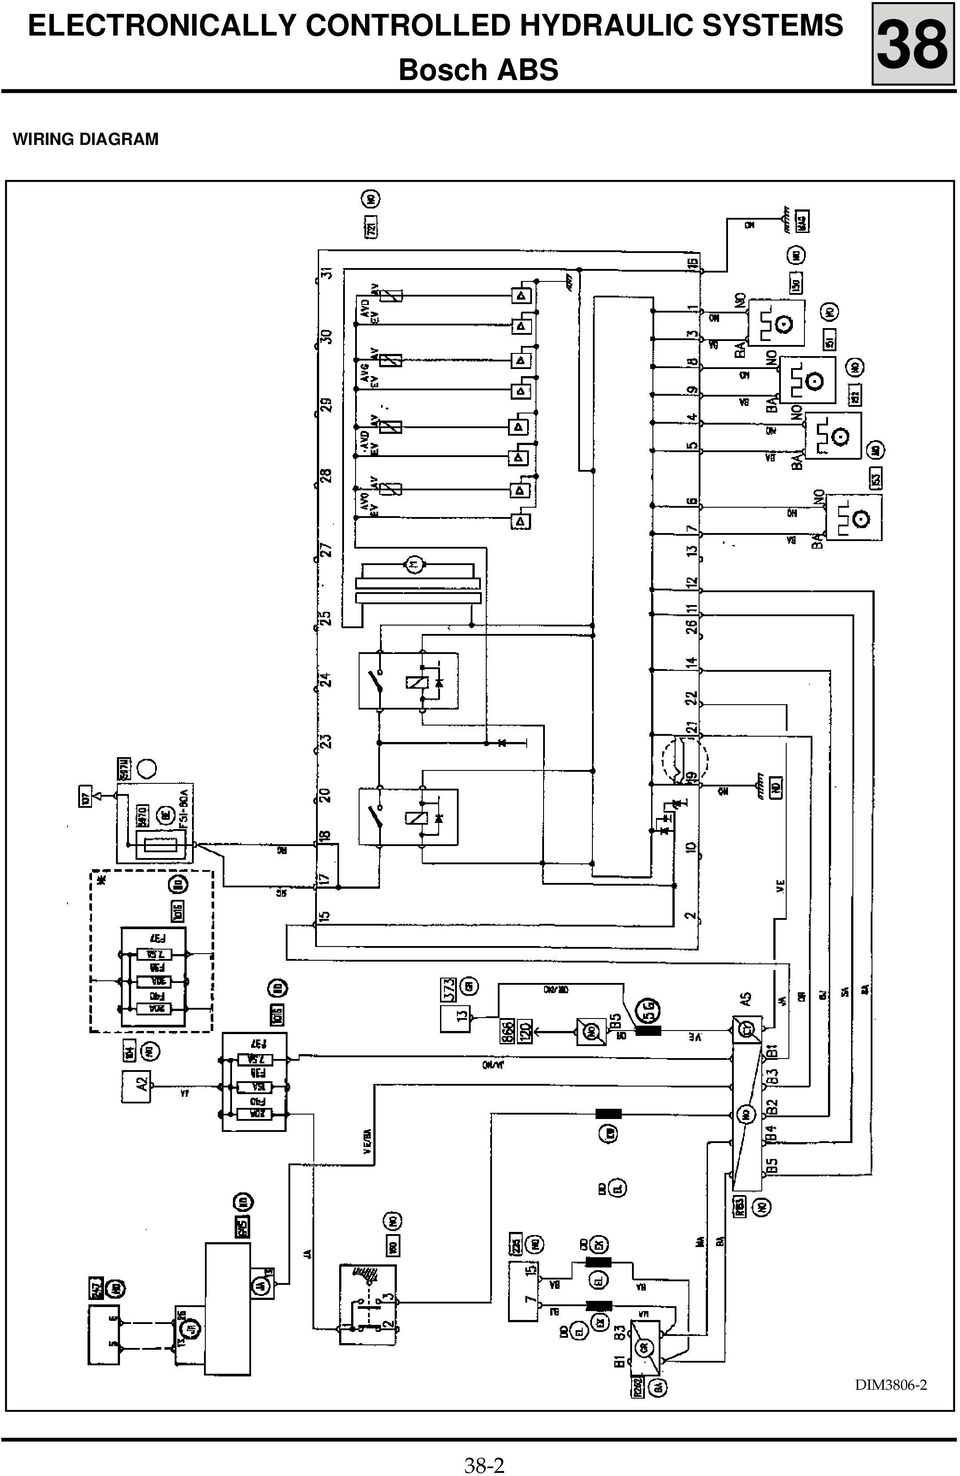 Basic Manual Contents Electronically Controlled Hydraulic Systems Pdf Pajero Wiring Diagram Index 53 Automotive Circuit 4 Key 104 Ignition Switch 120 Injection Computer 150 Rear Right Hand Wheel Sensor 151 Left 152 Front